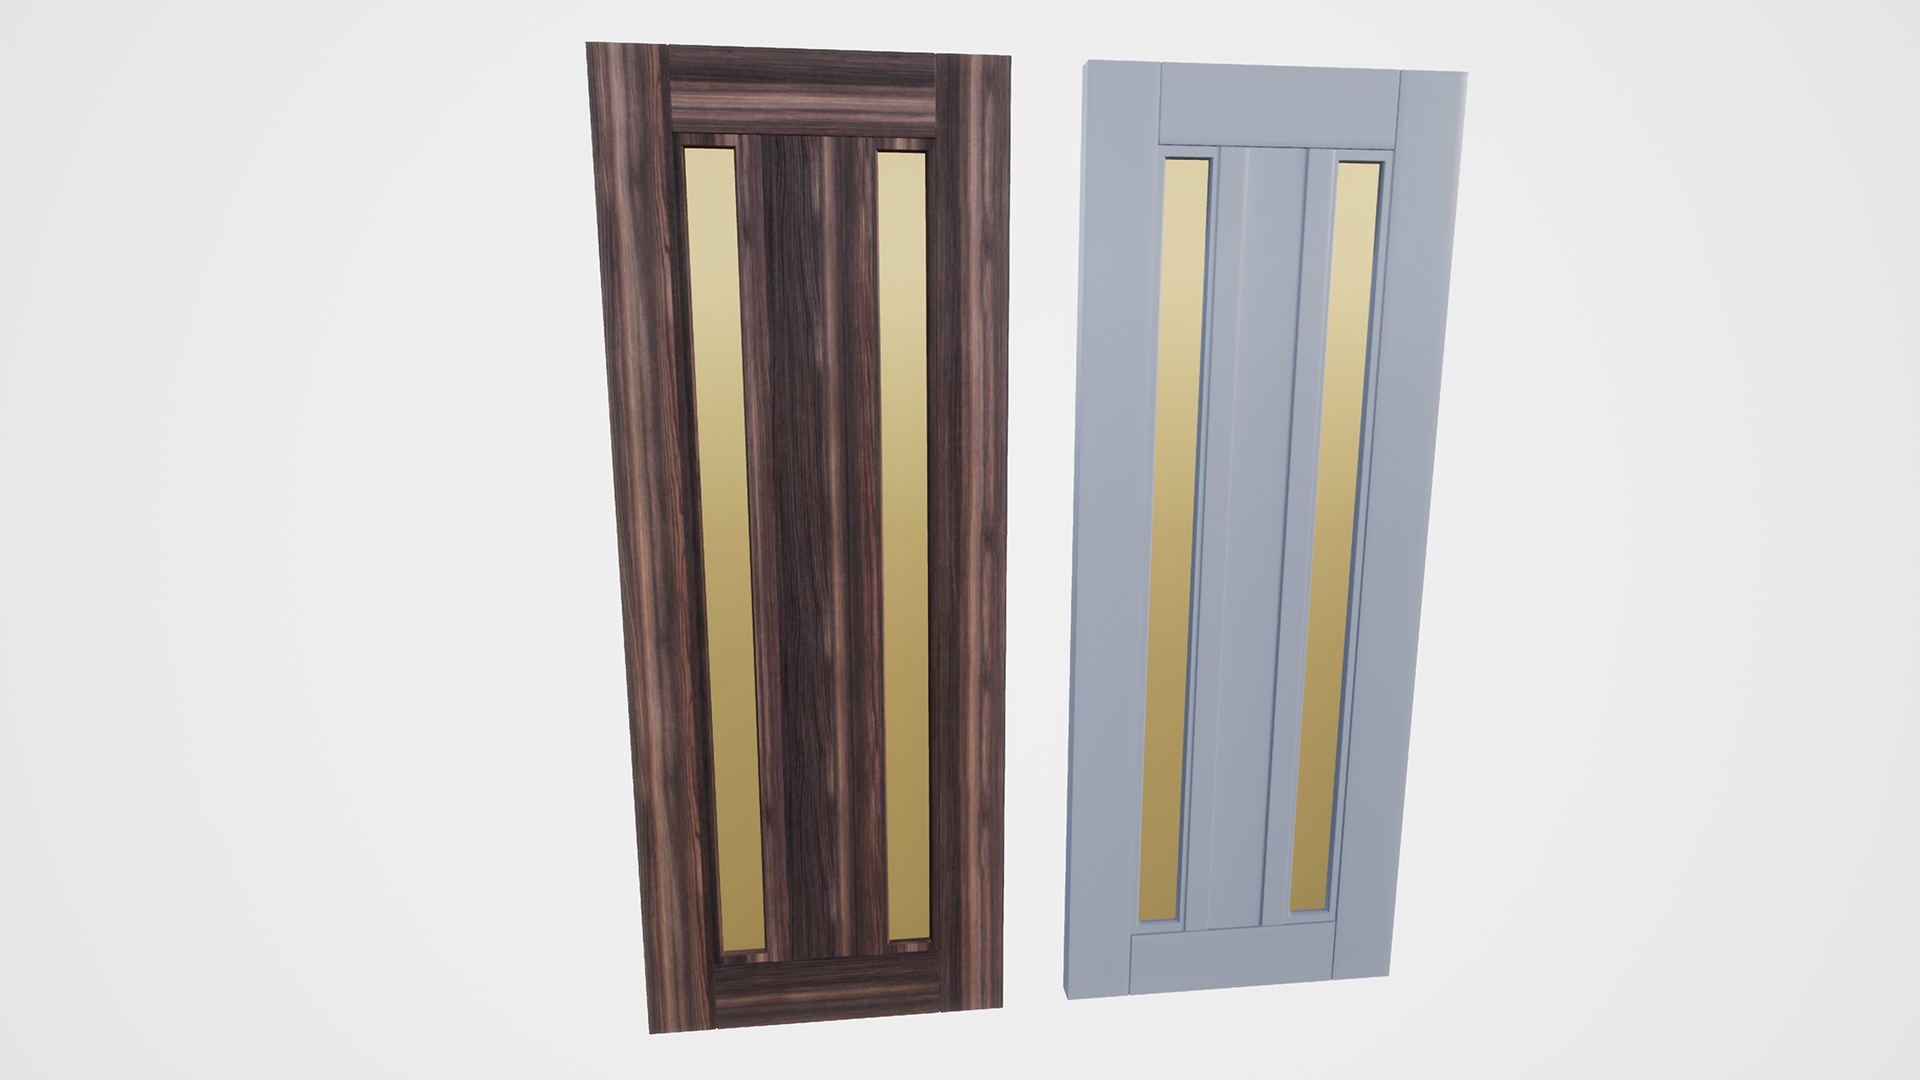 Interior doors dark wood vol 3 by omega s in architectural share planetlyrics Image collections